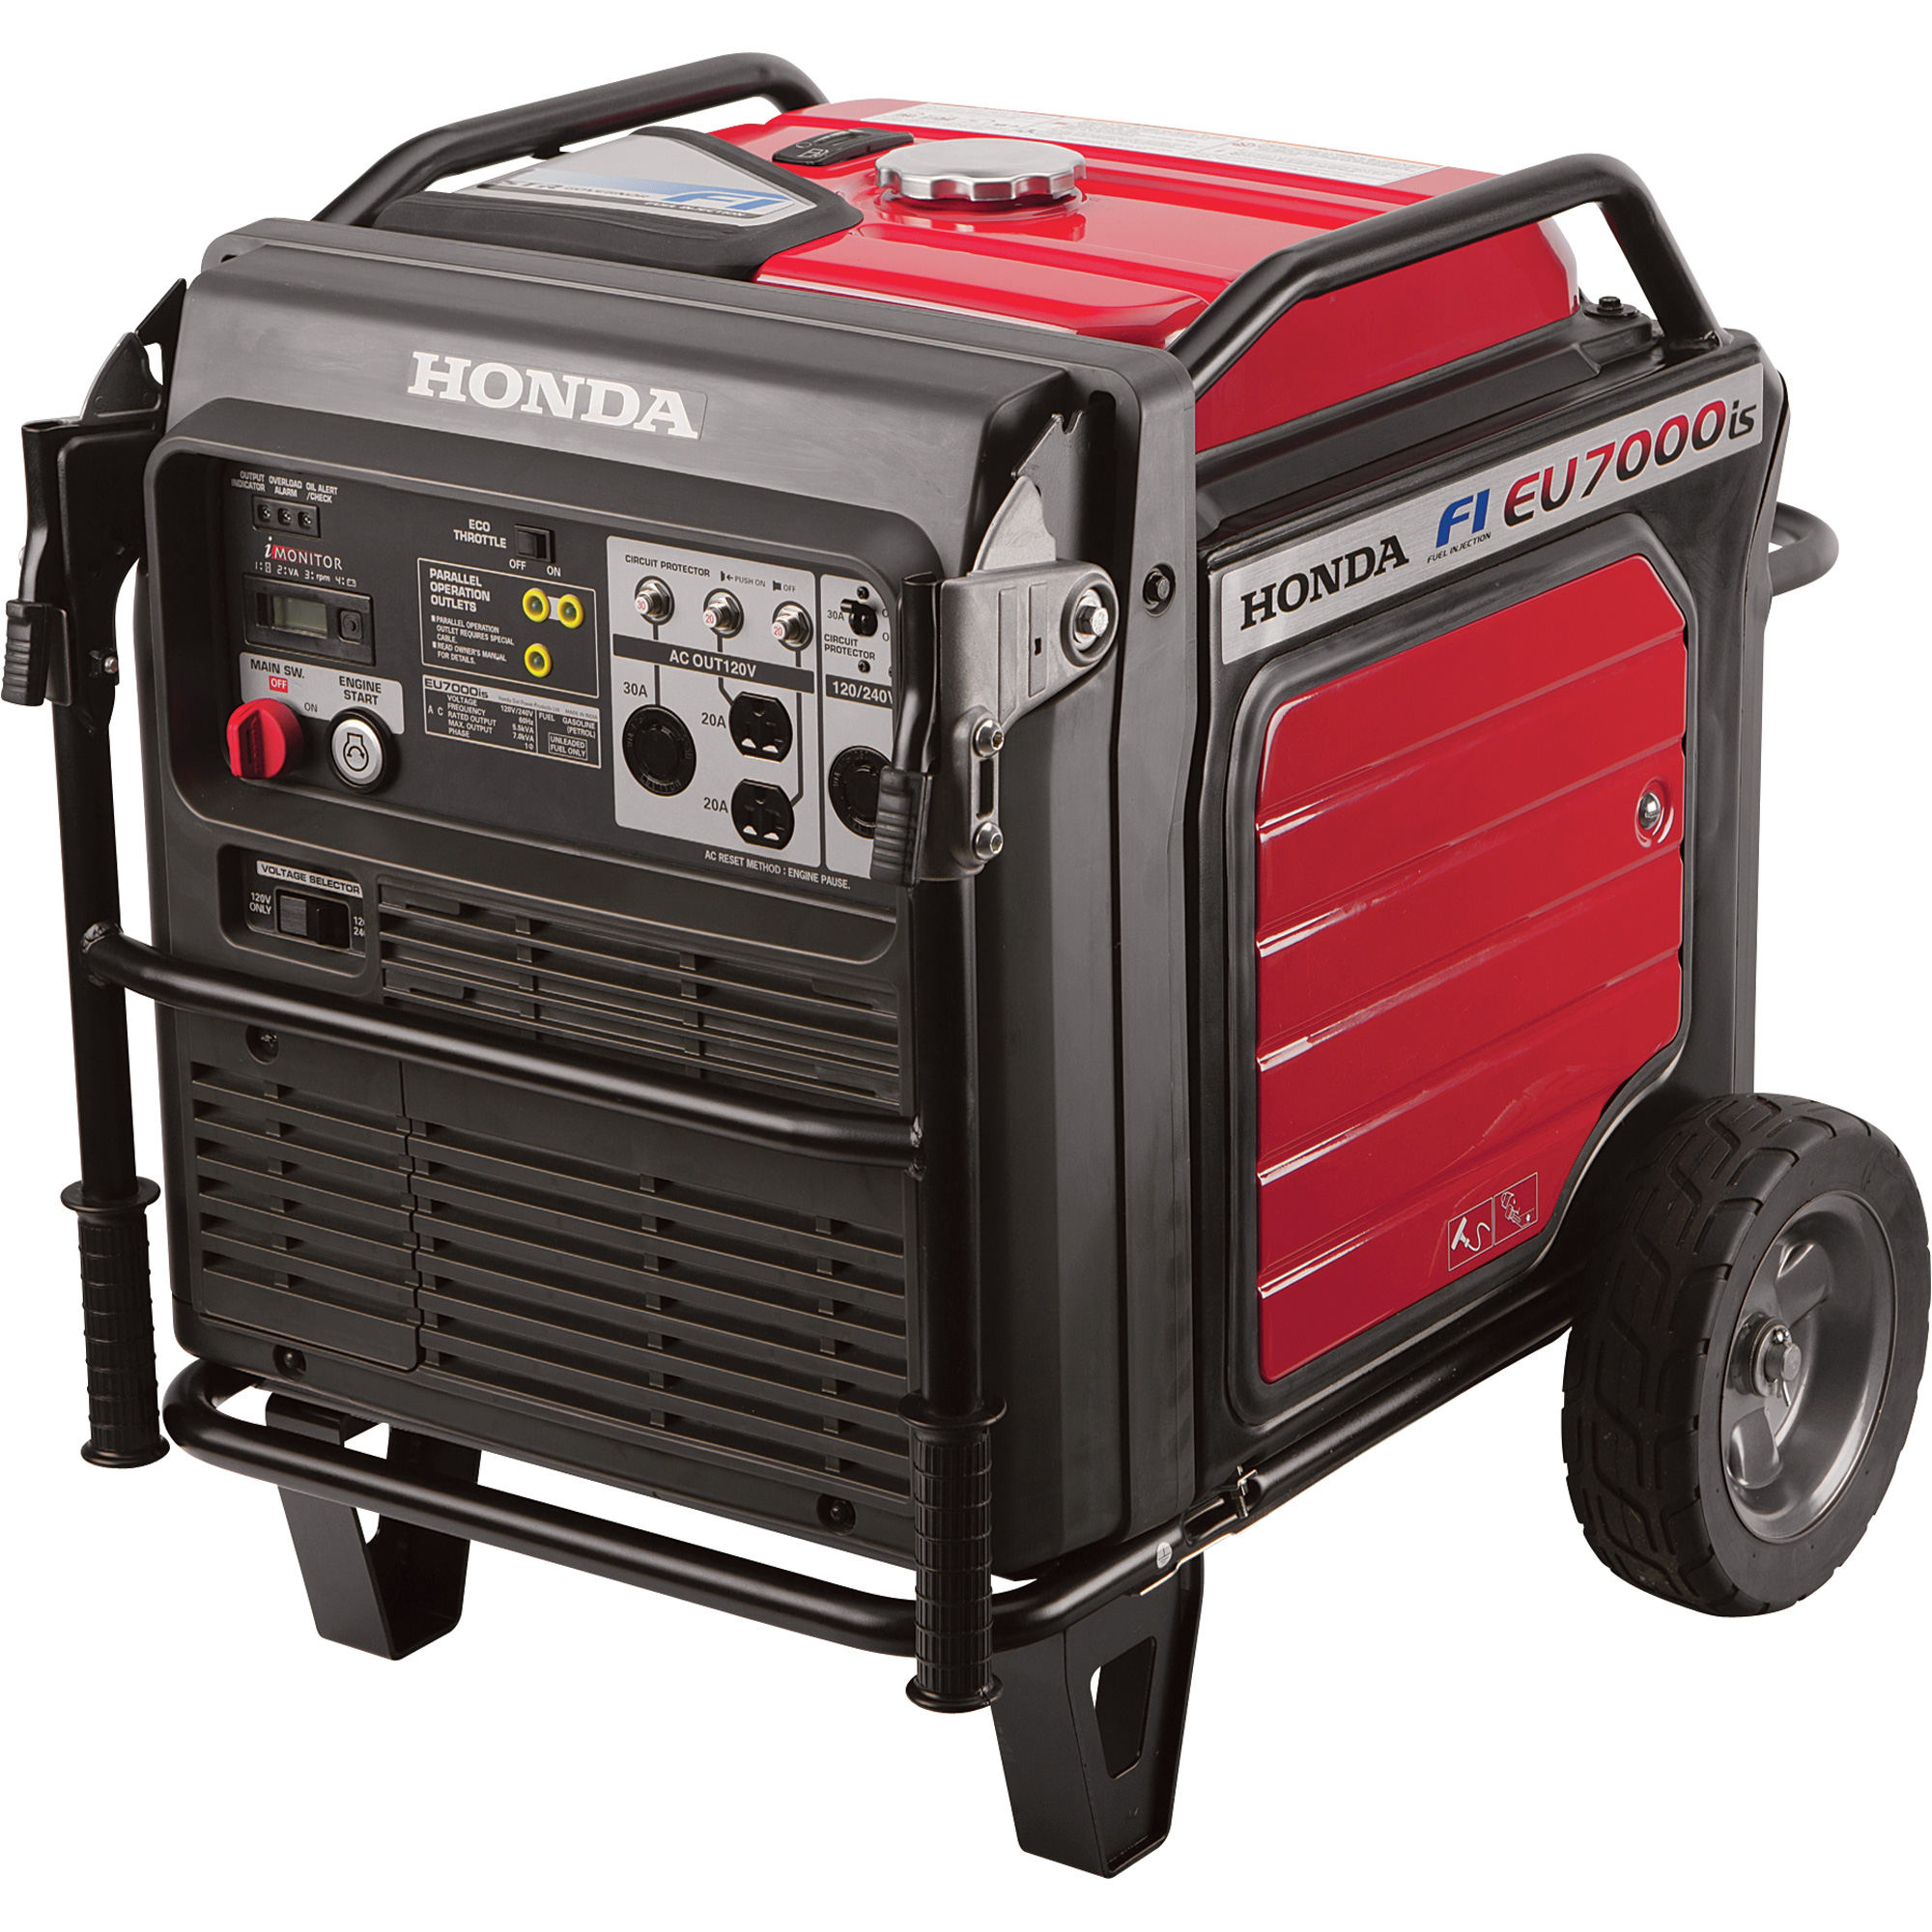 Honda Eu7000is 7000 Watt Portable Quiet Inverter Gas Power